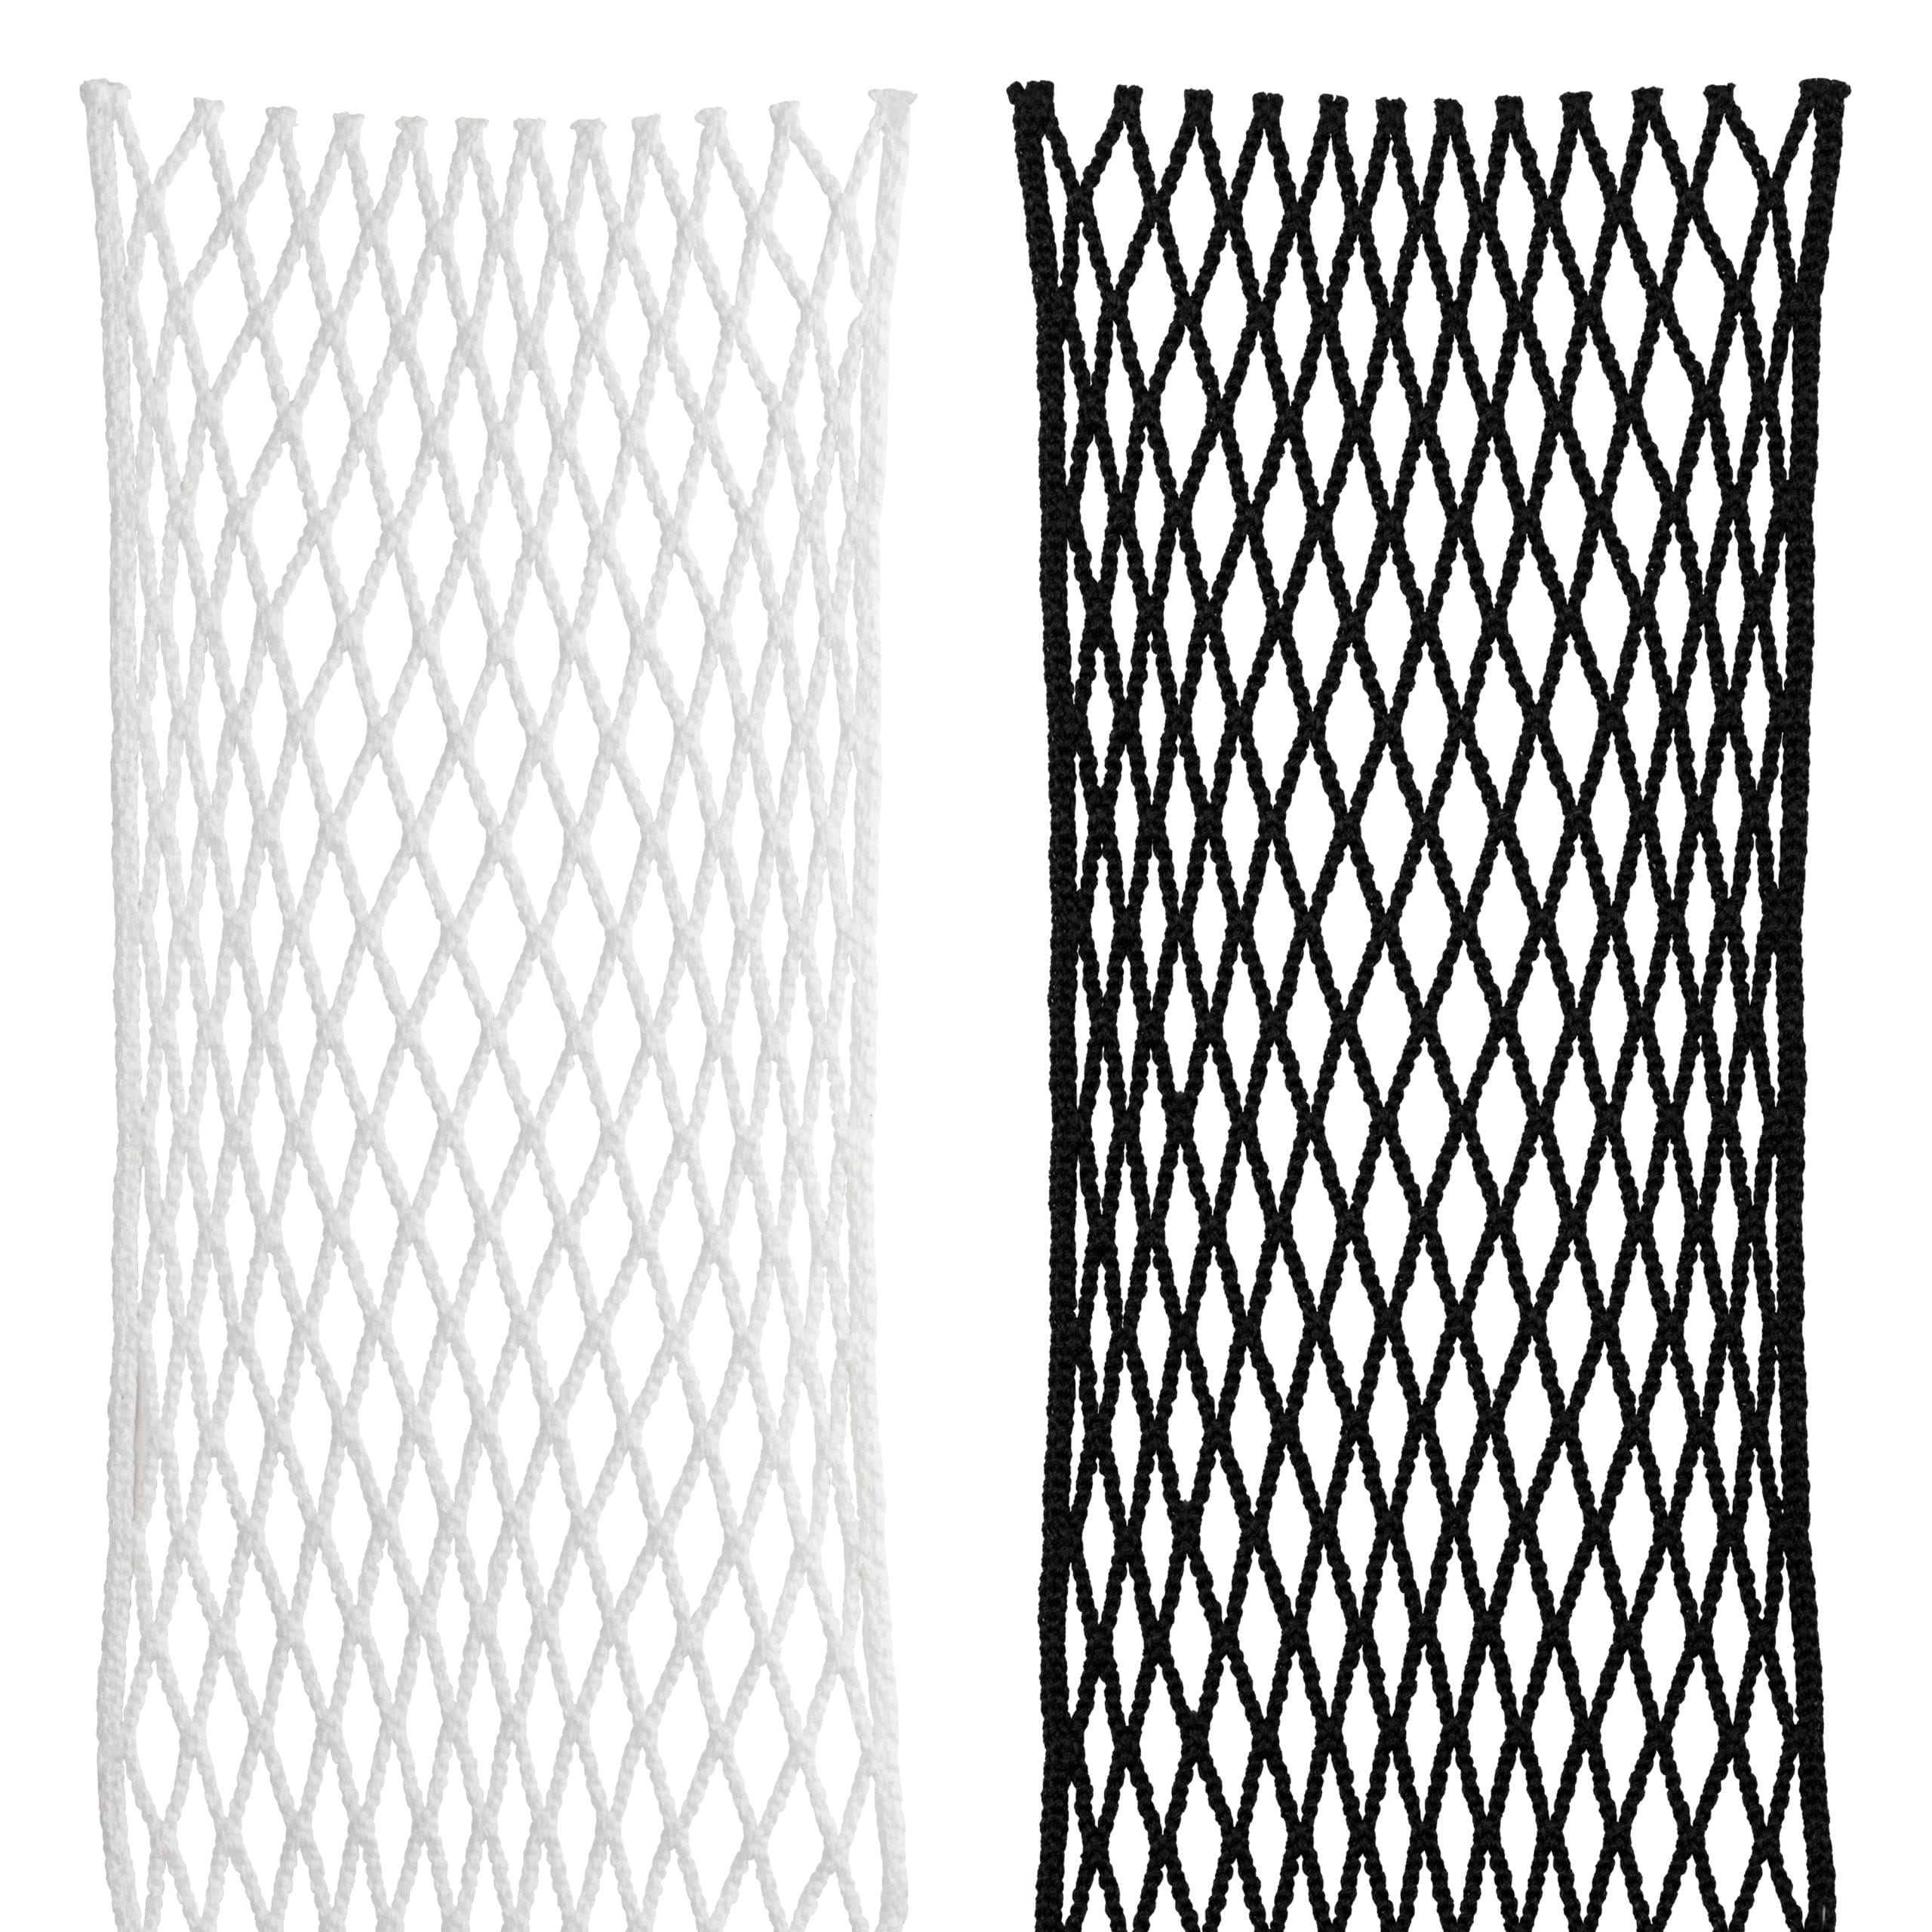 StringKing-Grizzly-2s-Goalie-Mesh-Kit-ProductIMage4000-scaled-1.jpg